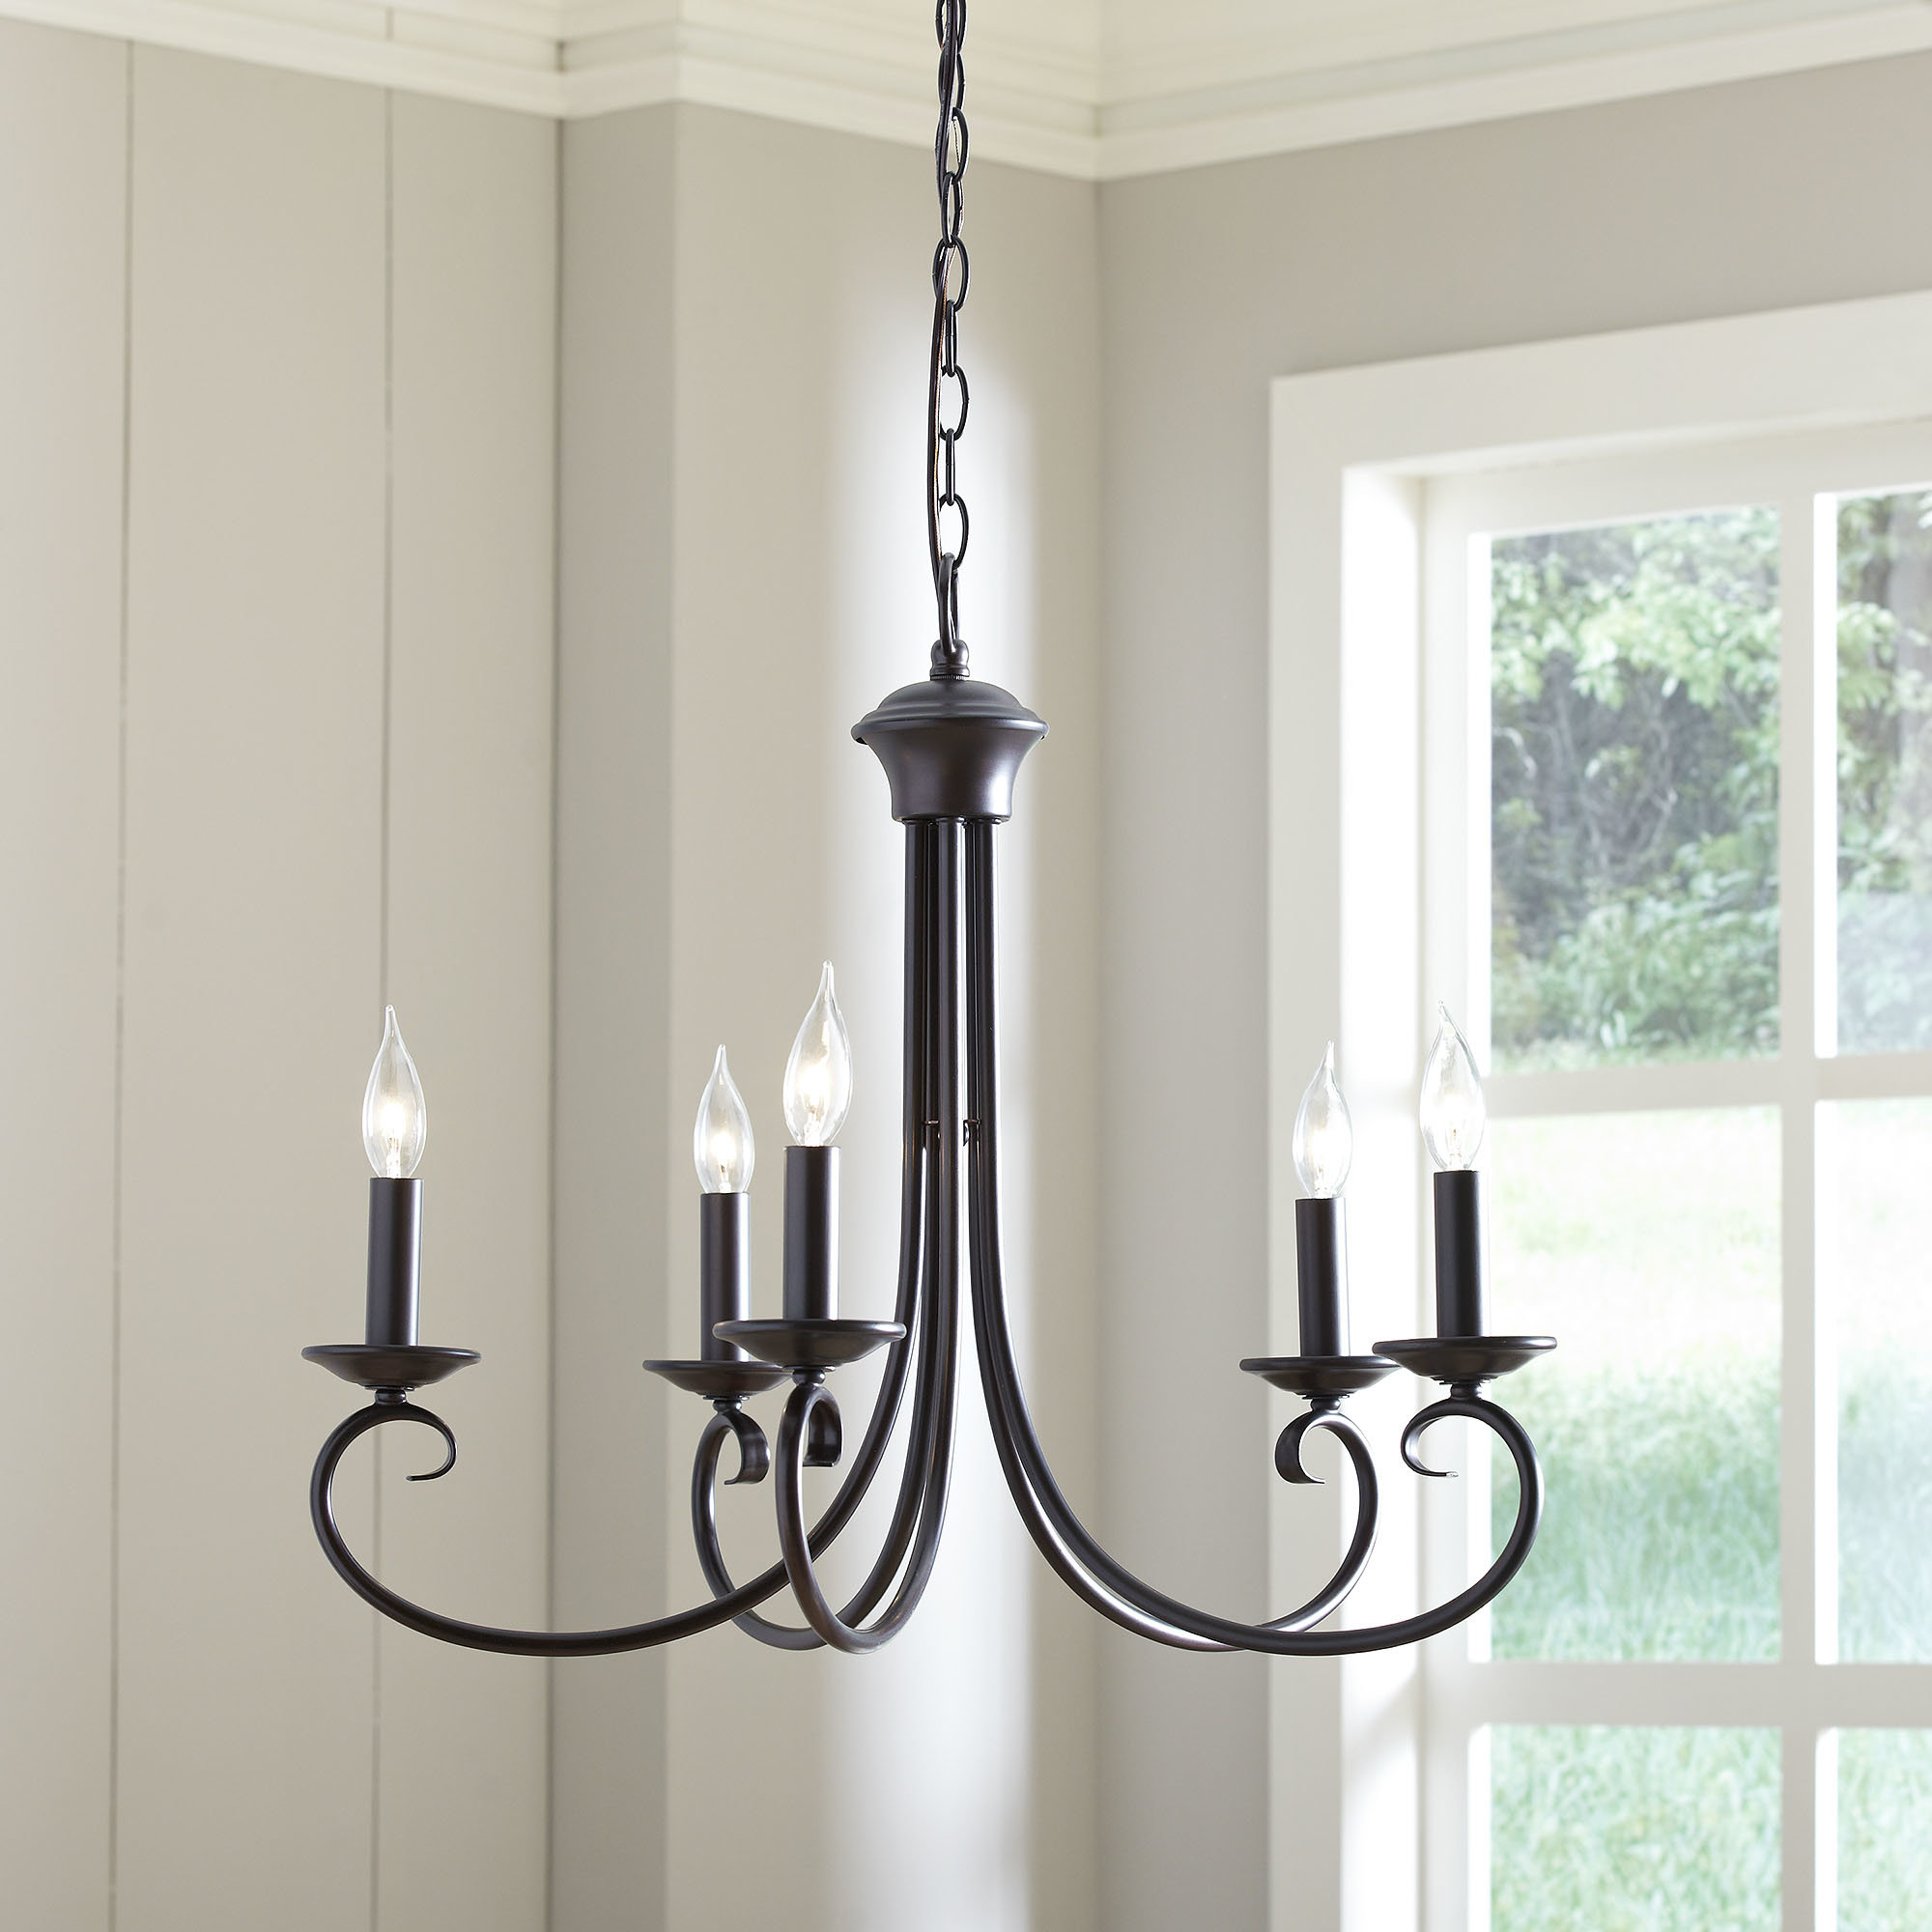 Widely Used Shaylee 5 Light Candle Style Chandeliers In Edgell 5 Light Candle Style Chandelier (Gallery 11 of 20)